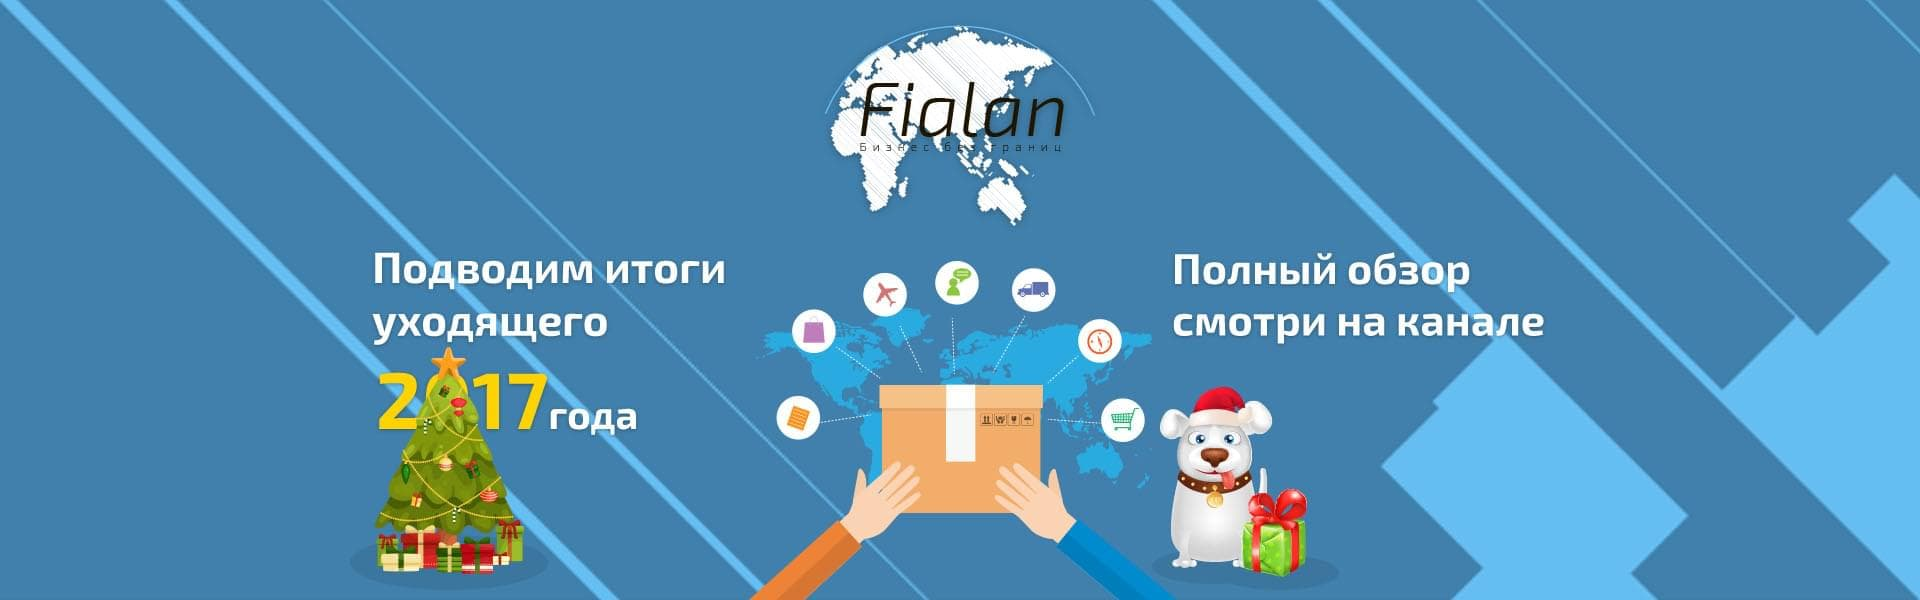 fialan_new_year_4